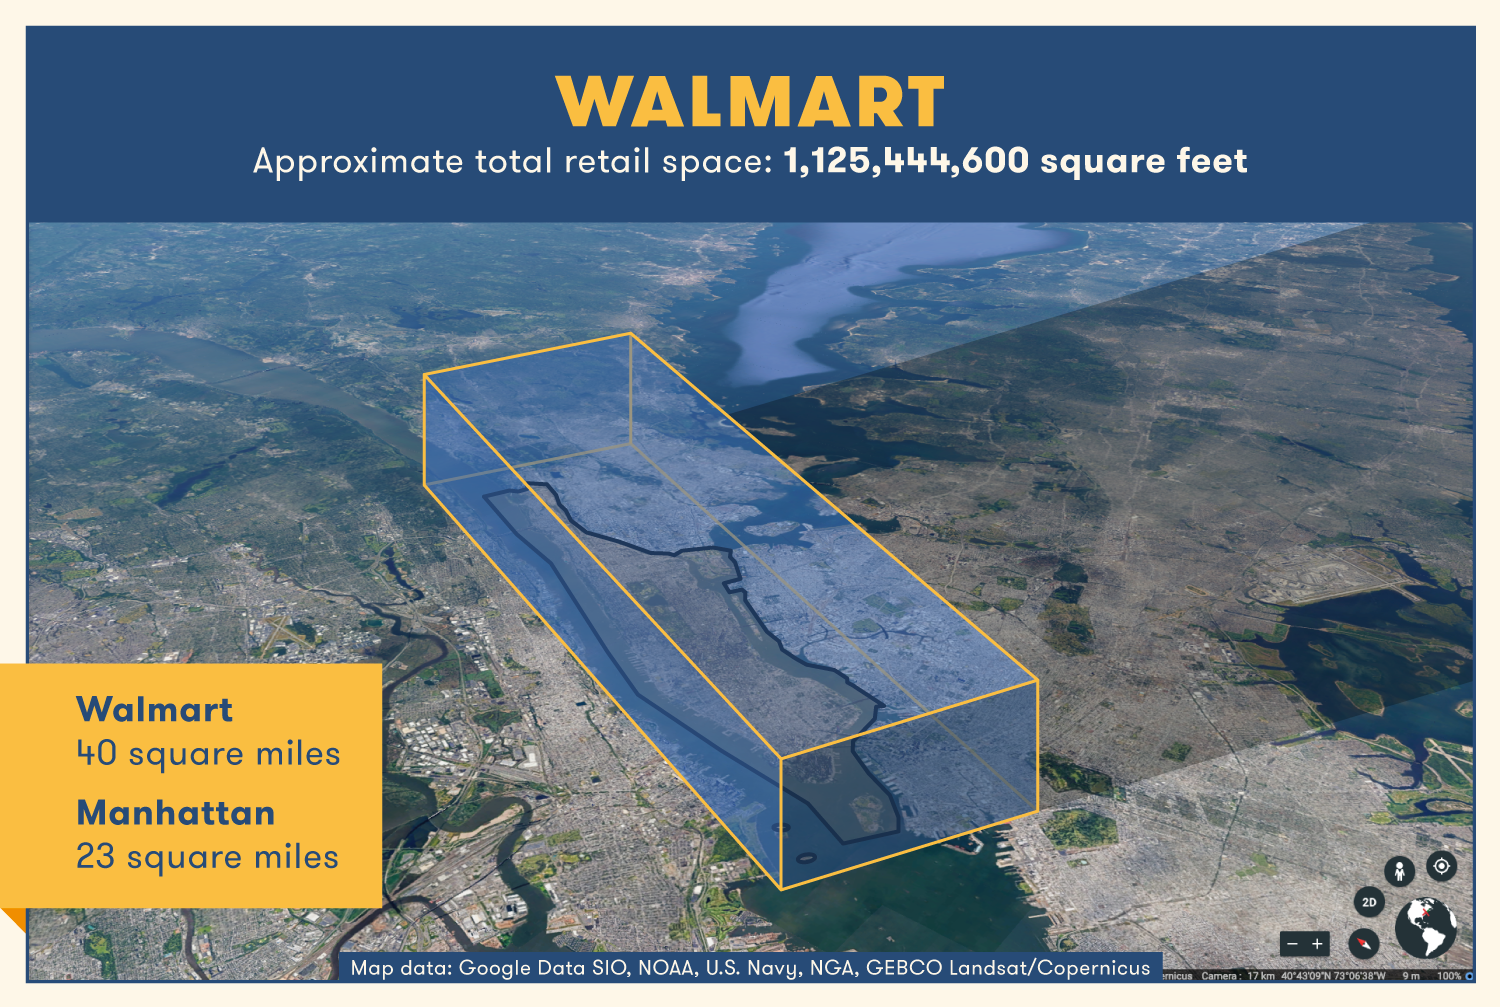 A Walmart store would be about double the square miles of Manhattan.